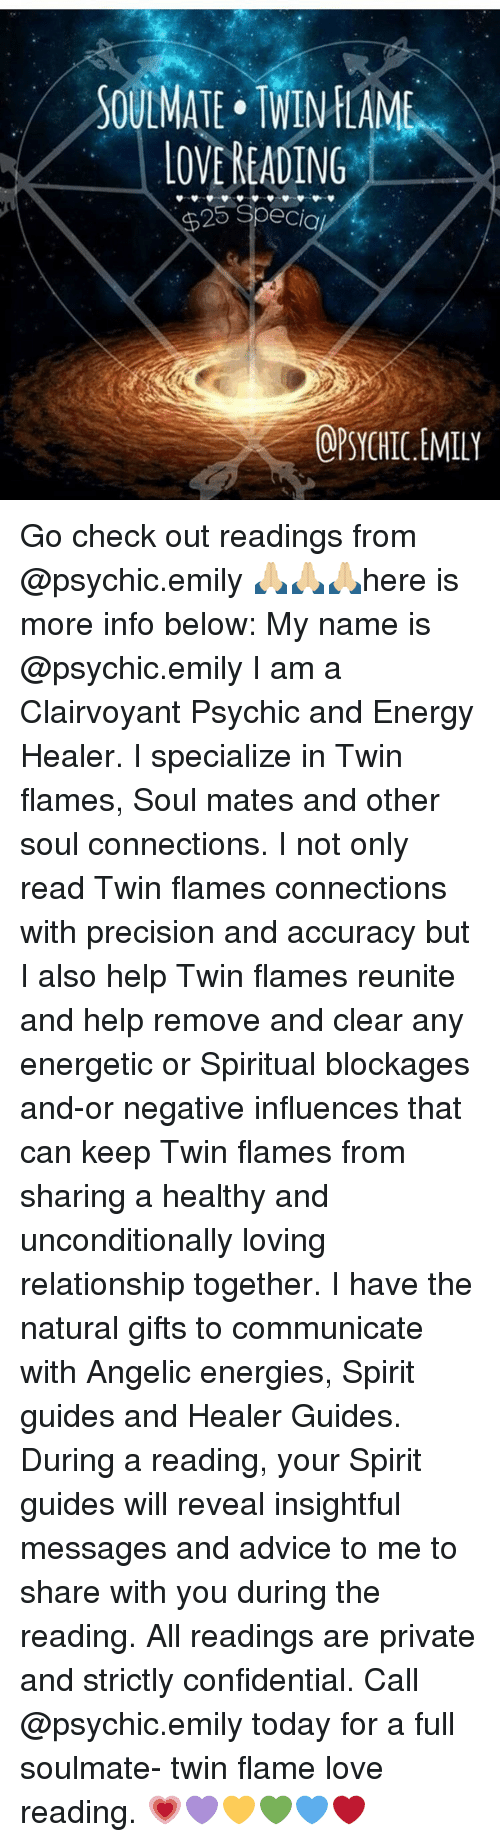 SOULMATE TWIN FLAME LOVE READING 25 Specia OPSYCHIC EMILY Go Check